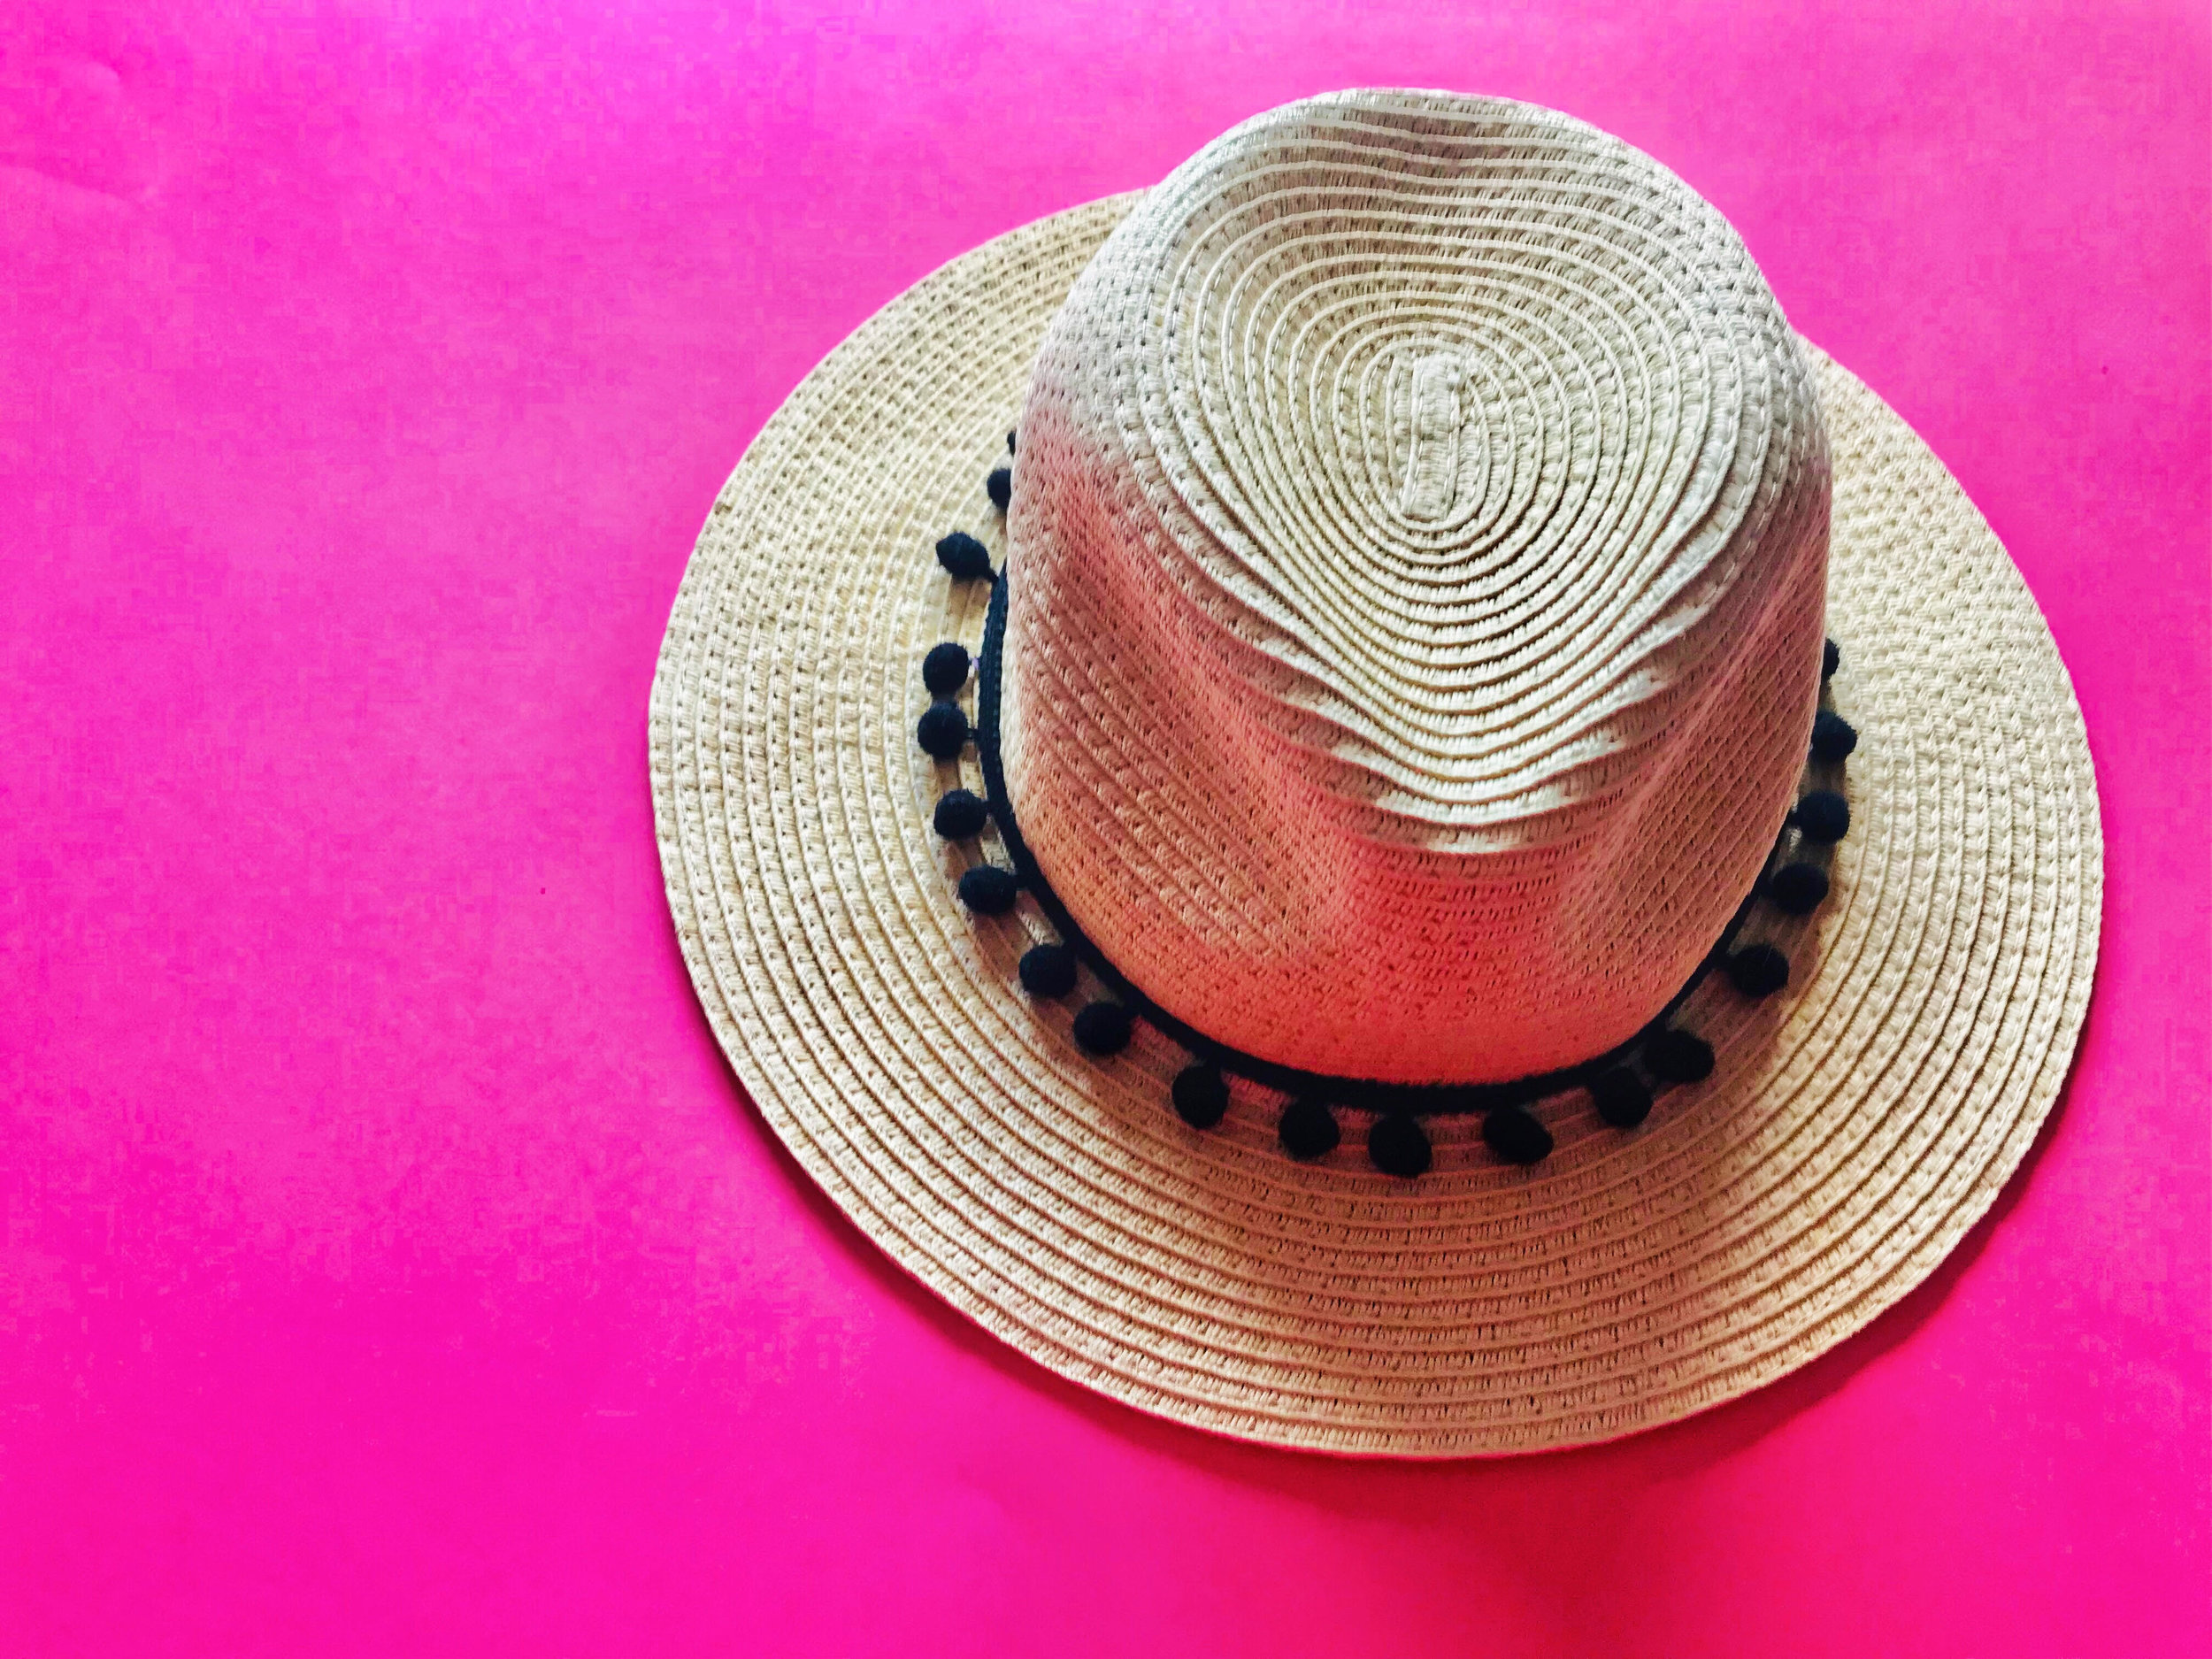 1. Beach Hat - Found a casual beach hat at my favorite consignment shop!Price: $13Second Chance Consignment Shop